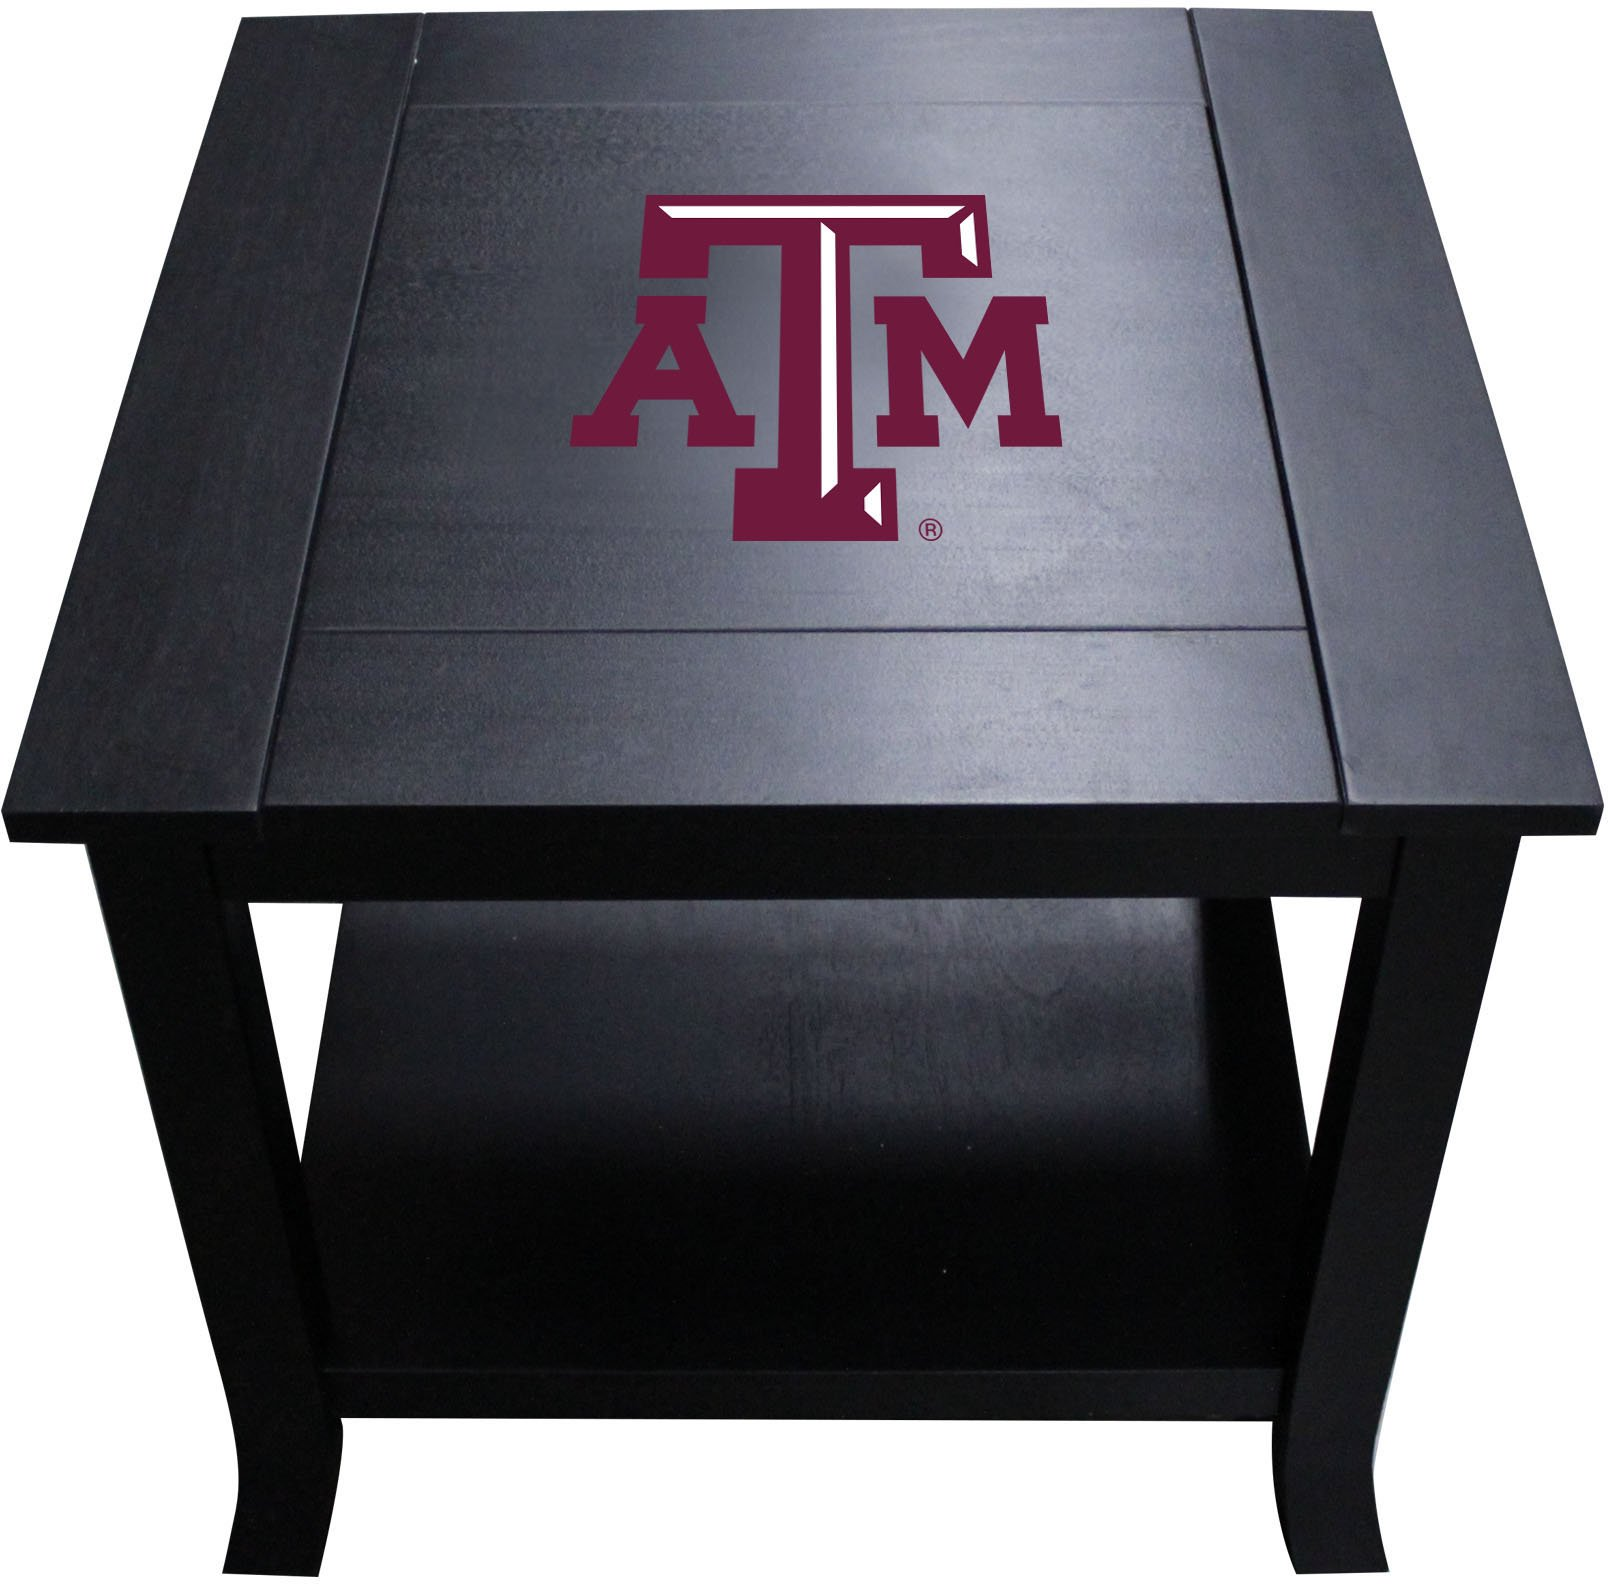 Imperial Officially Licensed NCAA Furniture: Hardwood Side/End Table, Texas A&M Aggies by Imperial